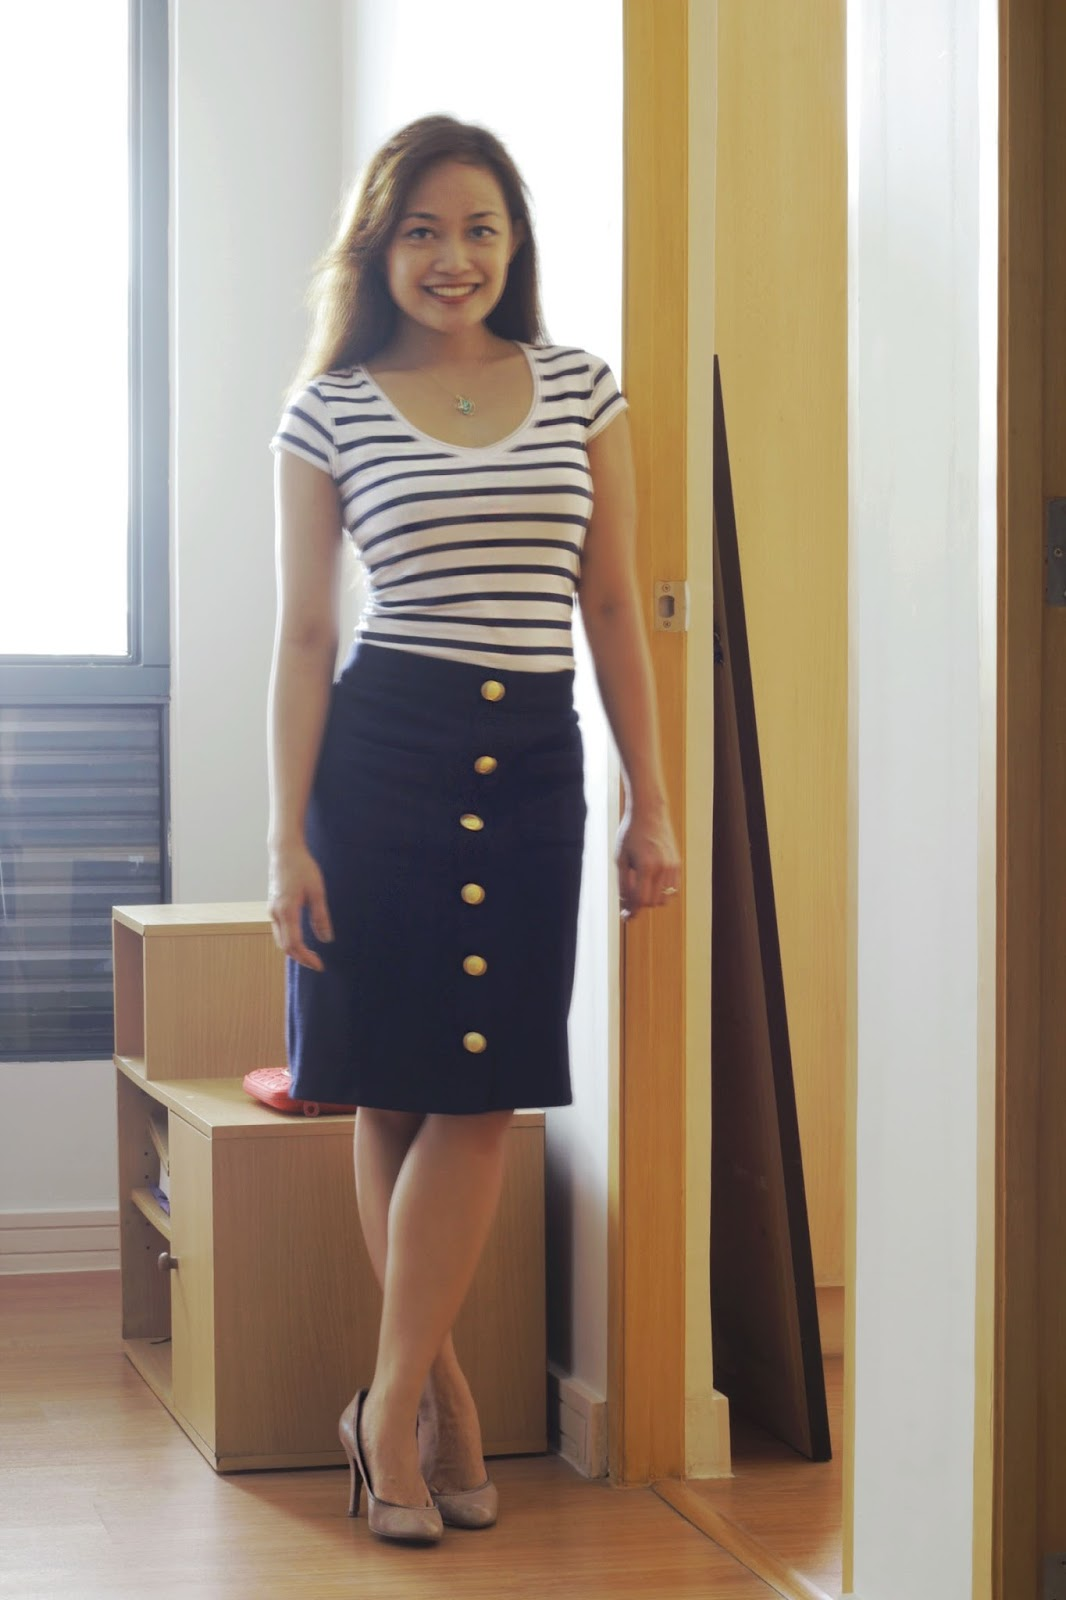 workwear, navy blue outfit, sailor outfit, stripes, pencil skirt, outfit for work